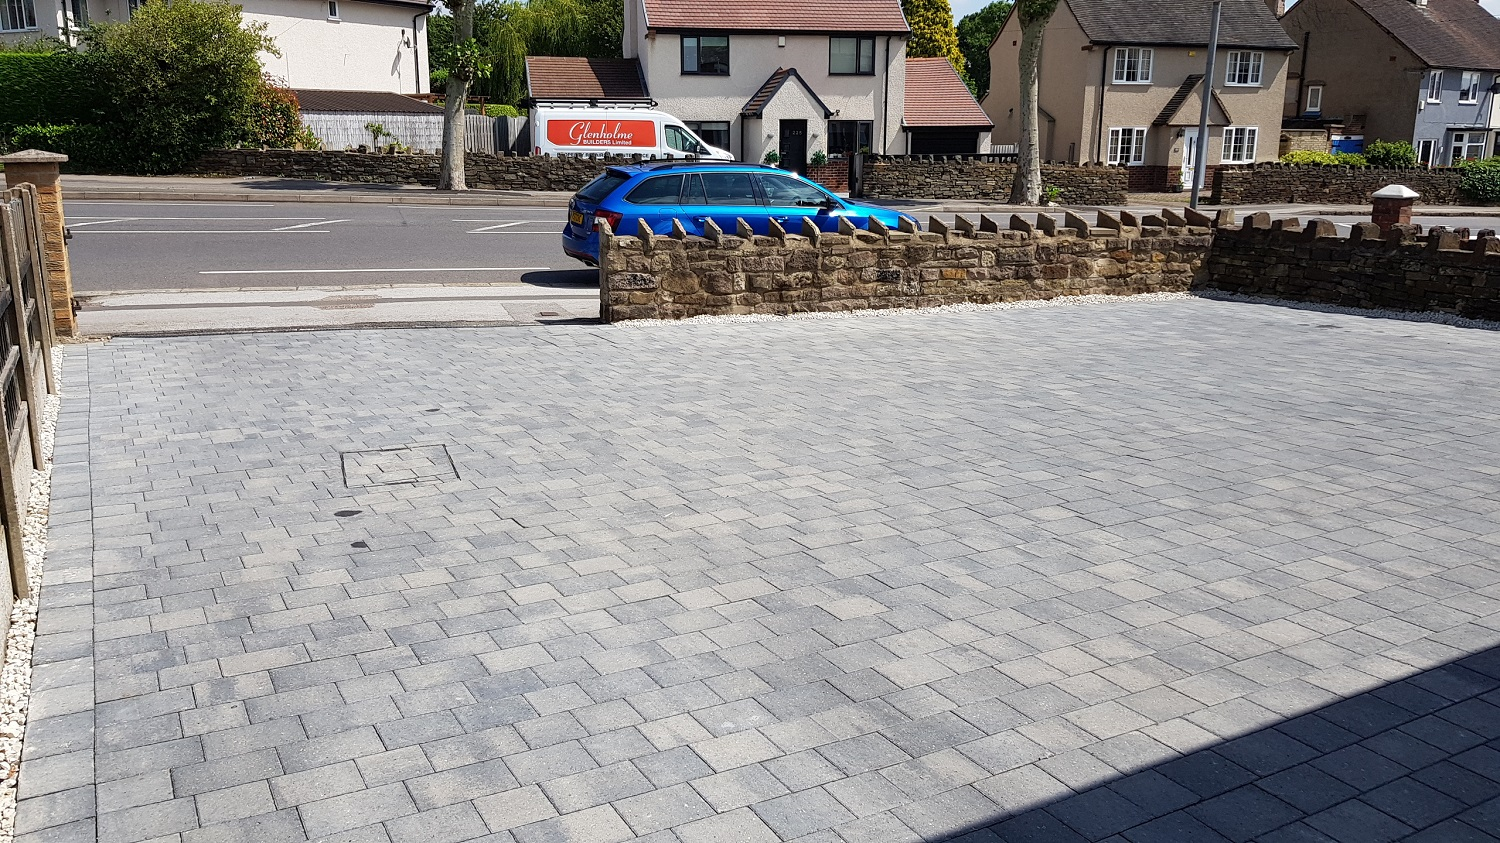 C30 Plaspave Modena Granite Stone Block Paving Driveway at Newbold in Chesterfield